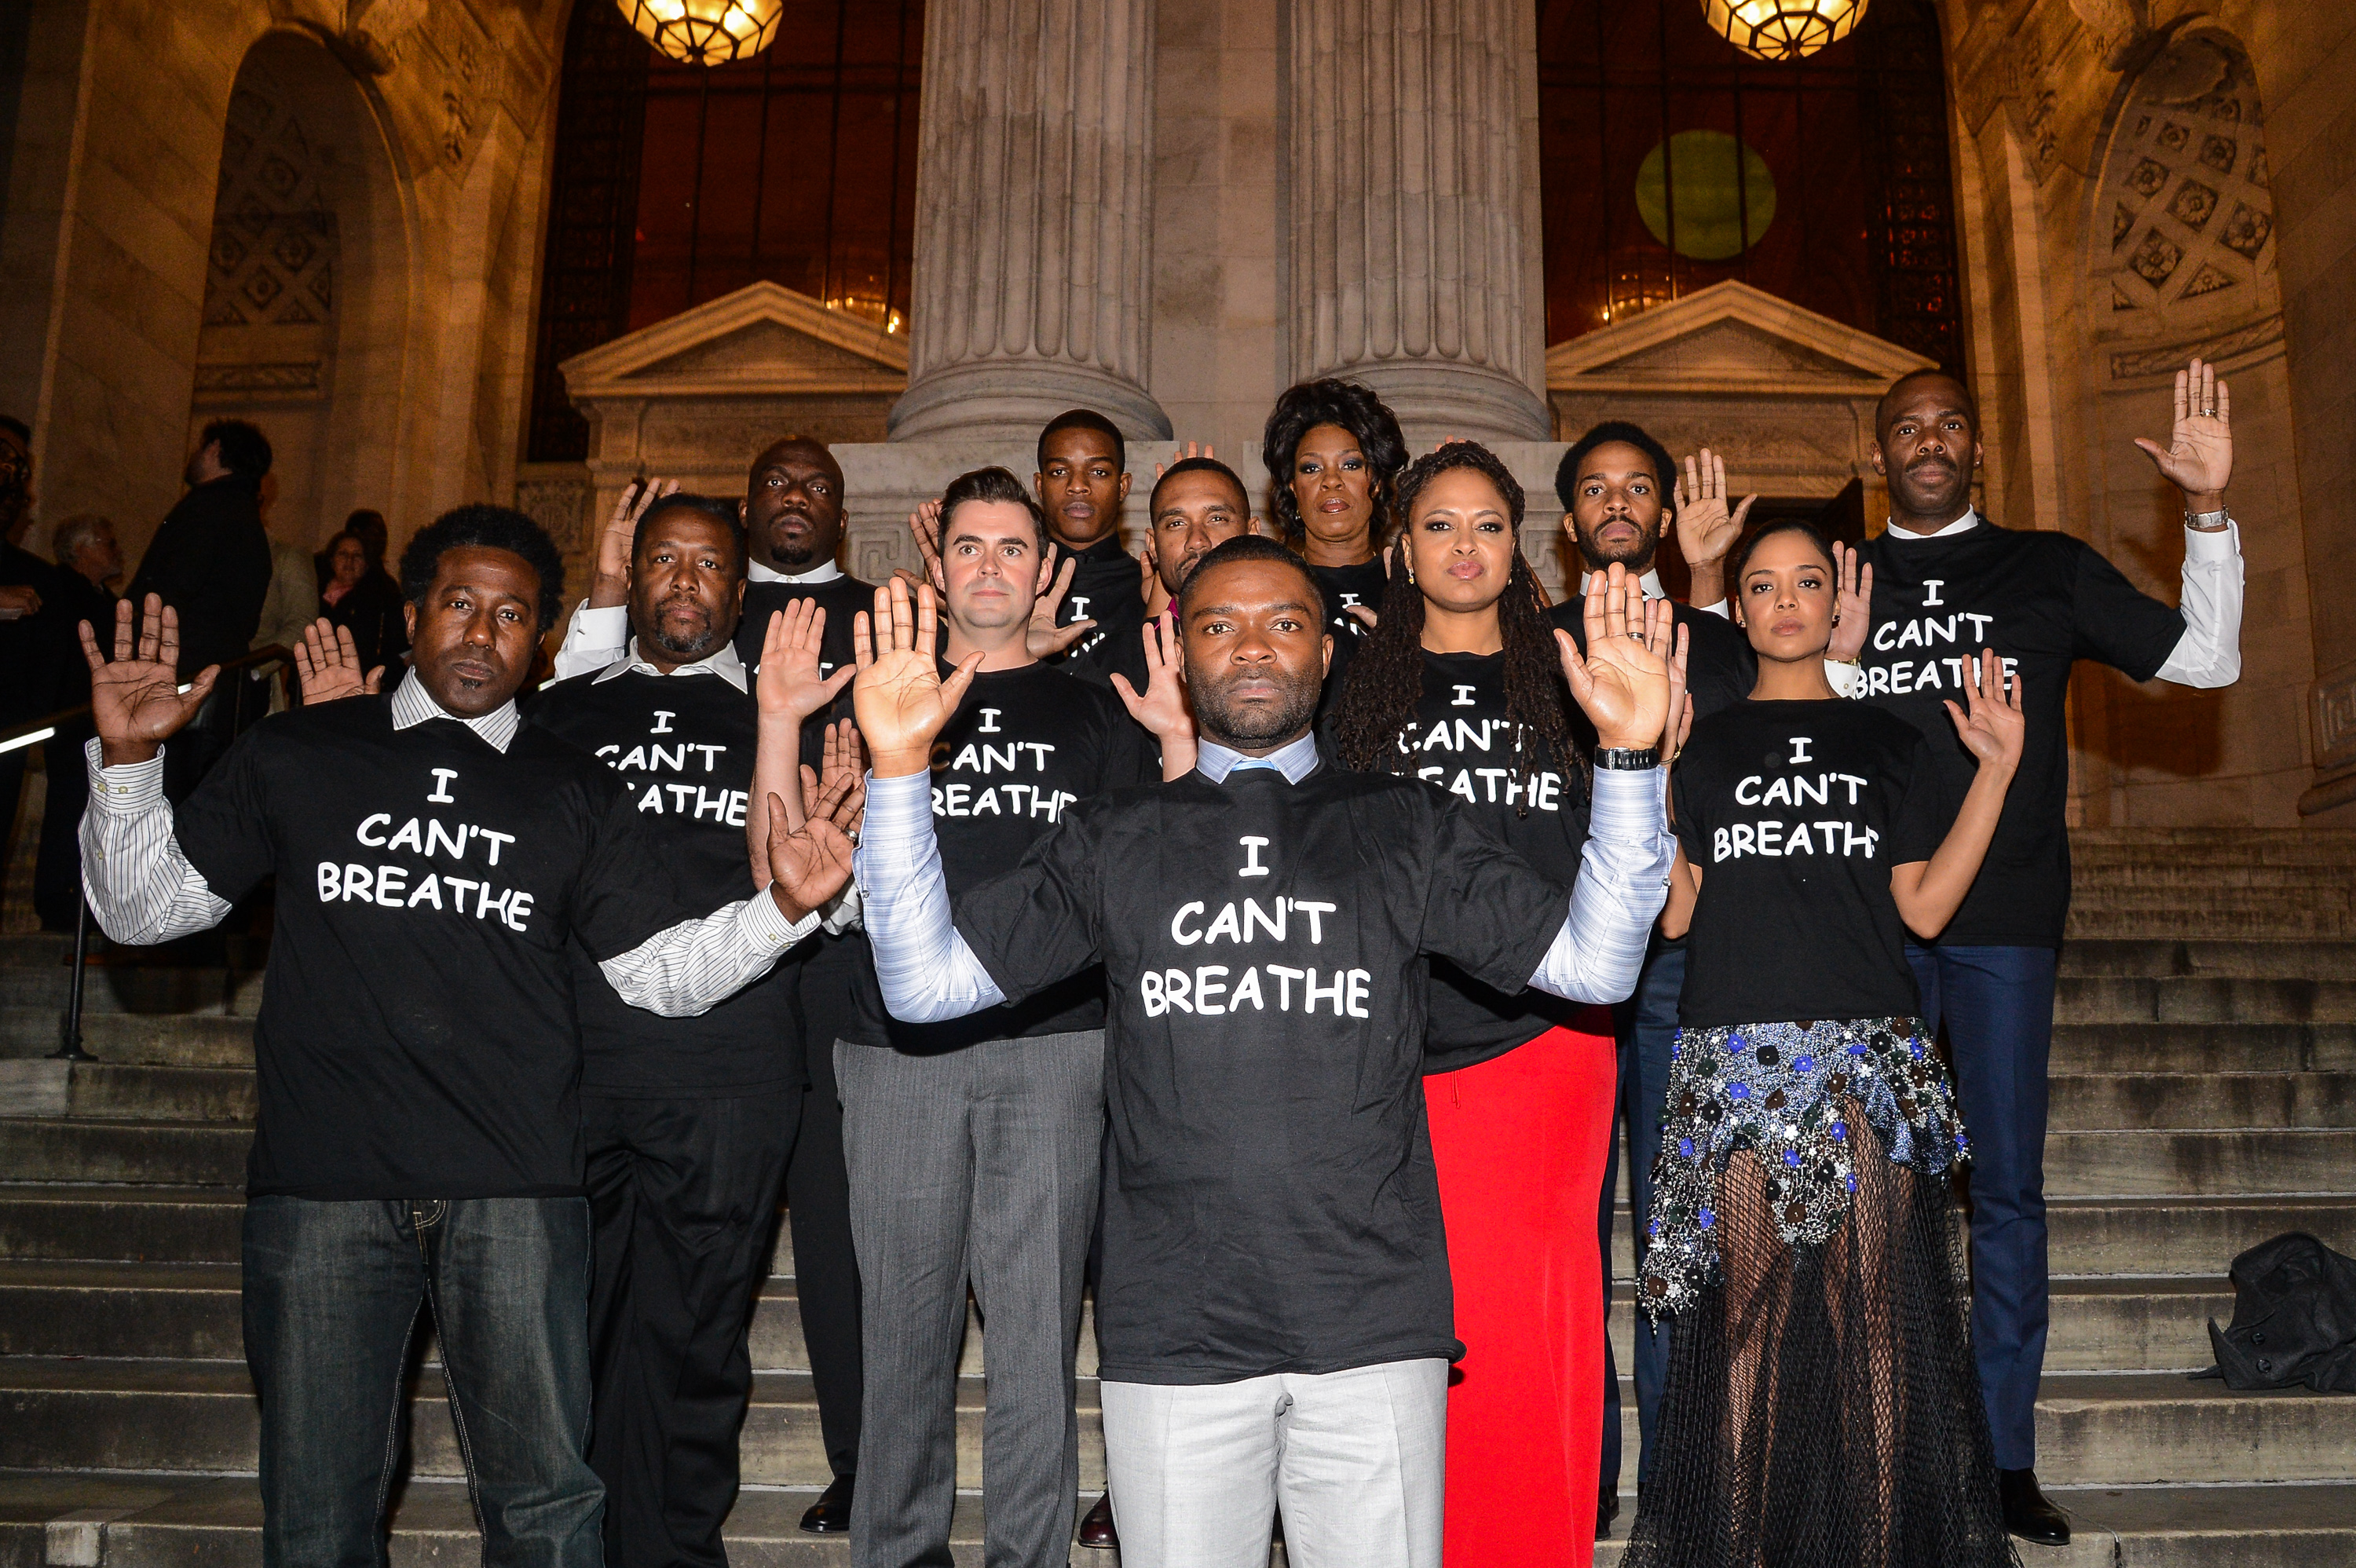 (L to R)  Selma  actors E. Roger Mitchell, Wendell Pierce, Omar Dorsey, John Lavelle, Stephan James, Kent Faulcon, David Oyelowo, Lorraine Toussaint, director Ava DuVernay, Tessa Thompson, Andre Holland, and Colman Domingo wear  I Can't Breathe  t-shirts to protest the death of Eric Garner at the New York Public Library on December 14, 2014 in New York City